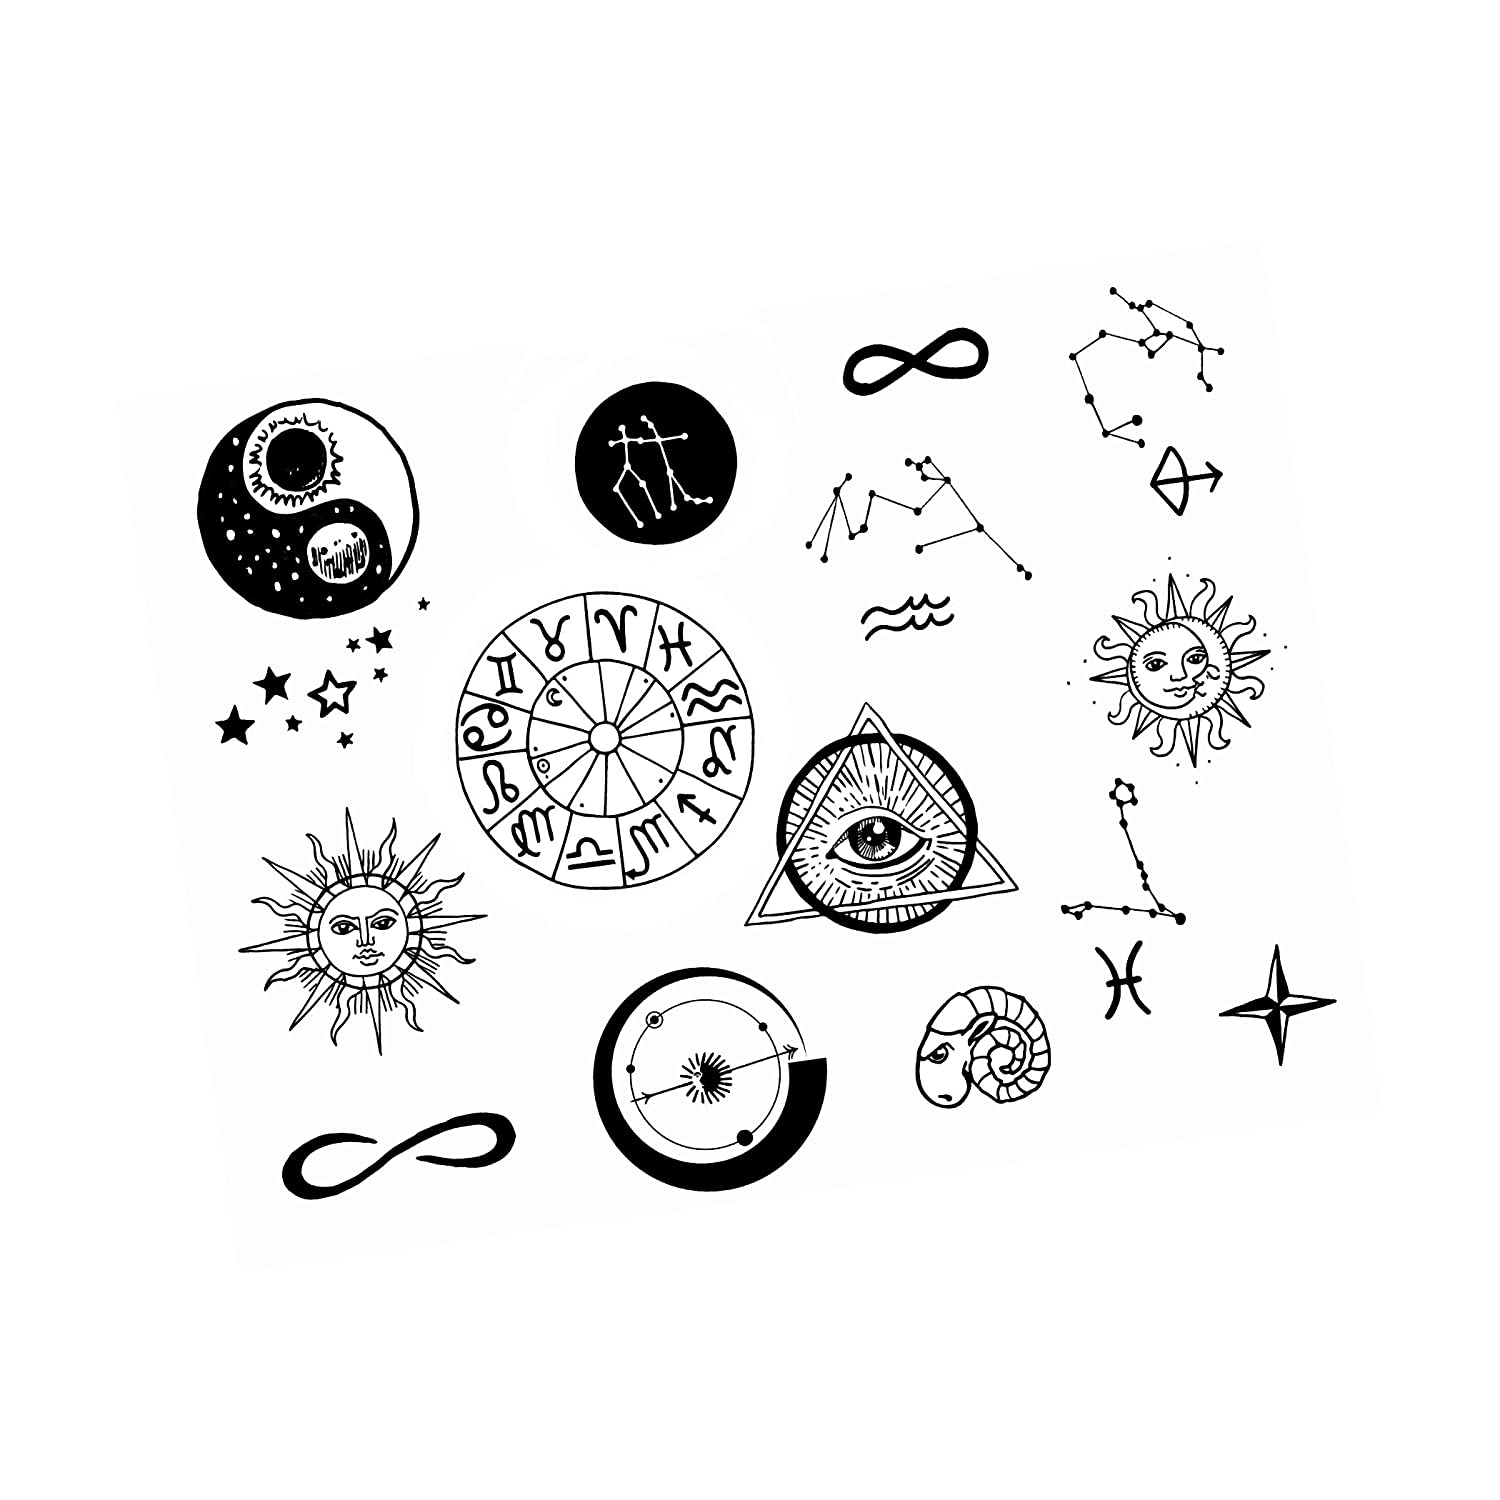 Neva Nude Zodiac Large Temporary Tattoo Pack   Body Decoration for Festivals, Raves, and More